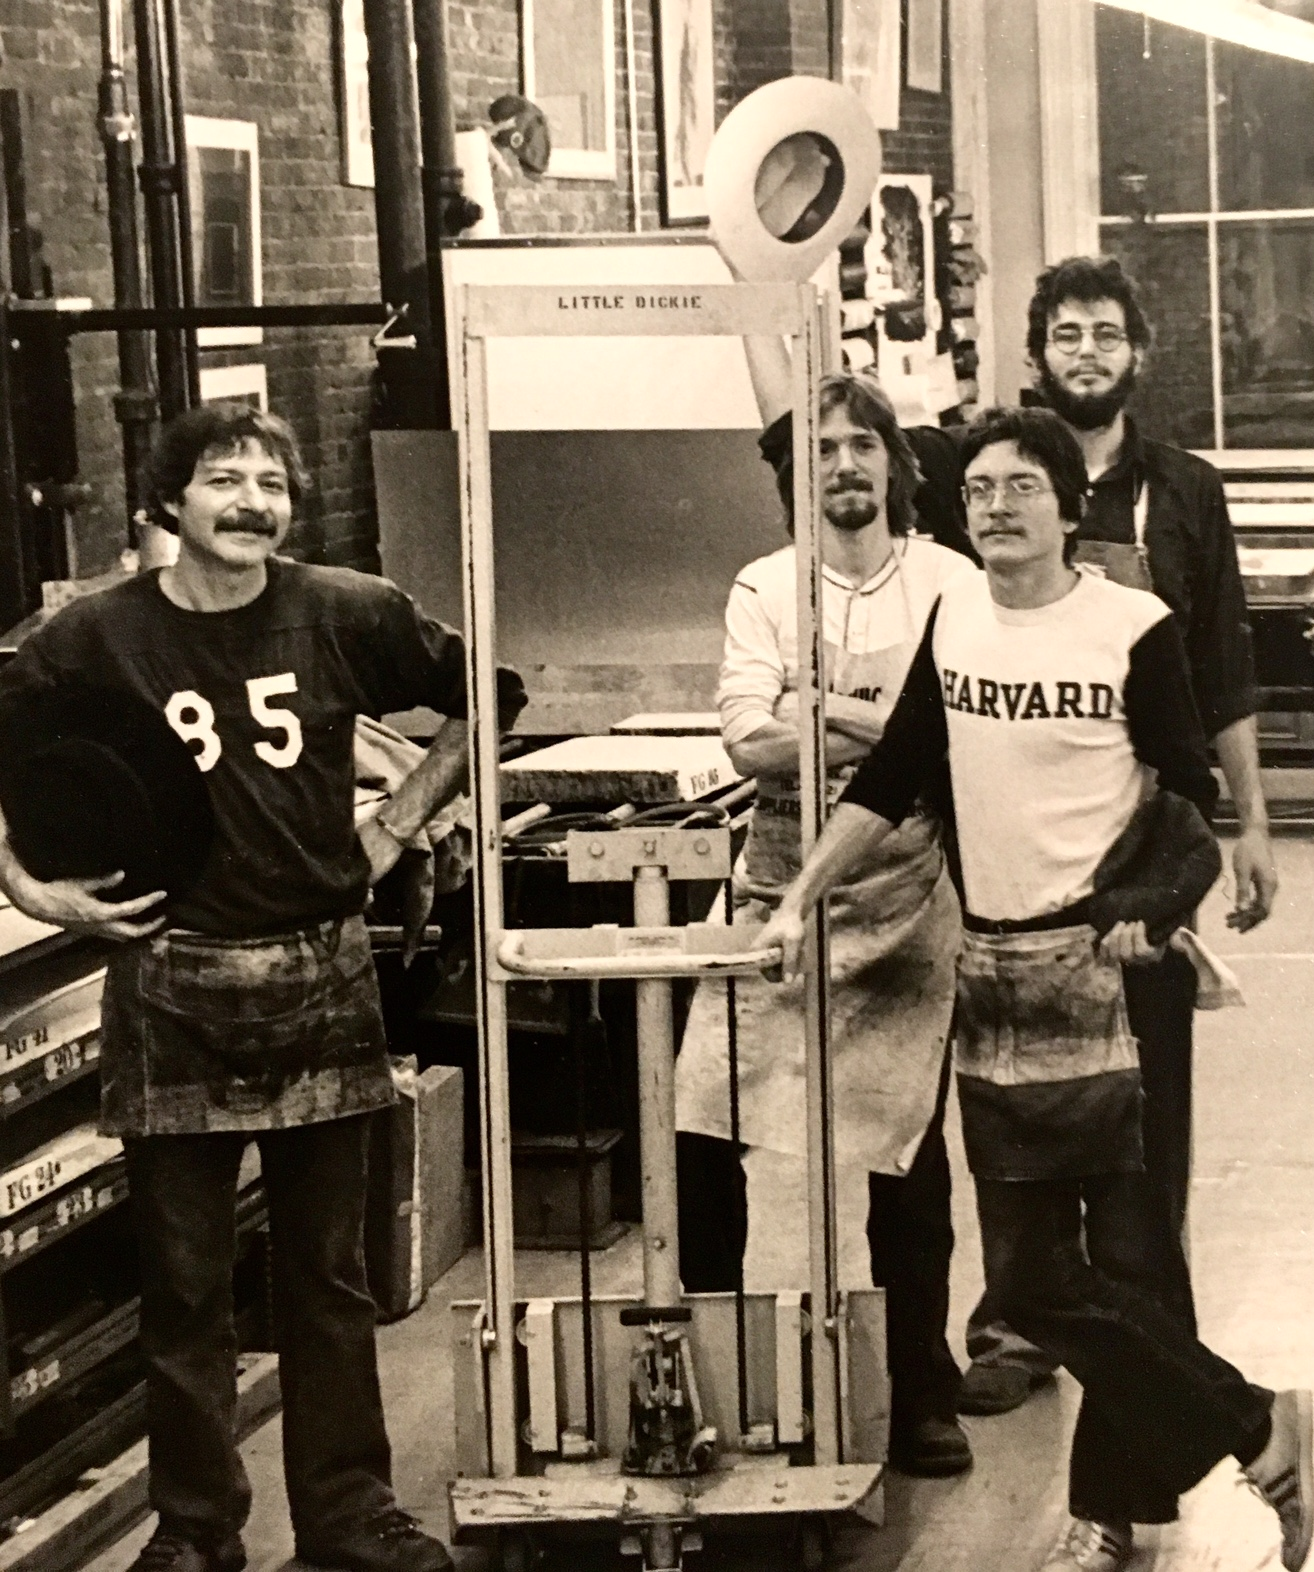 master printer, herb fox • peter o'sullivan • me • chris bonfatti • fox graphics, bromfield street, boston • 1978